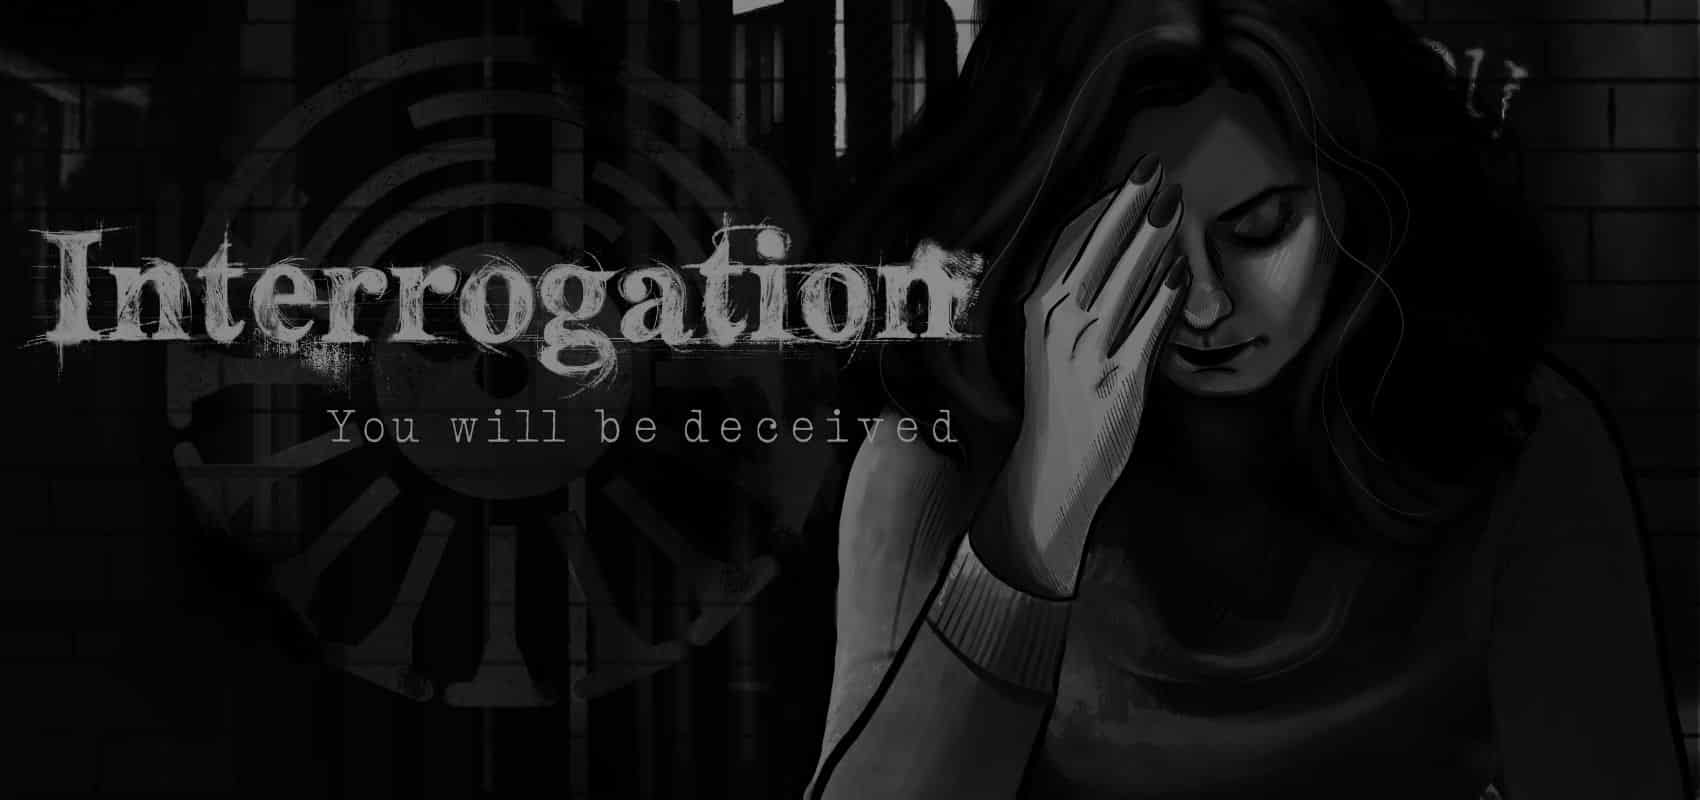 'Interrogation: You will be deceived' will captivate you and make you question your beliefs